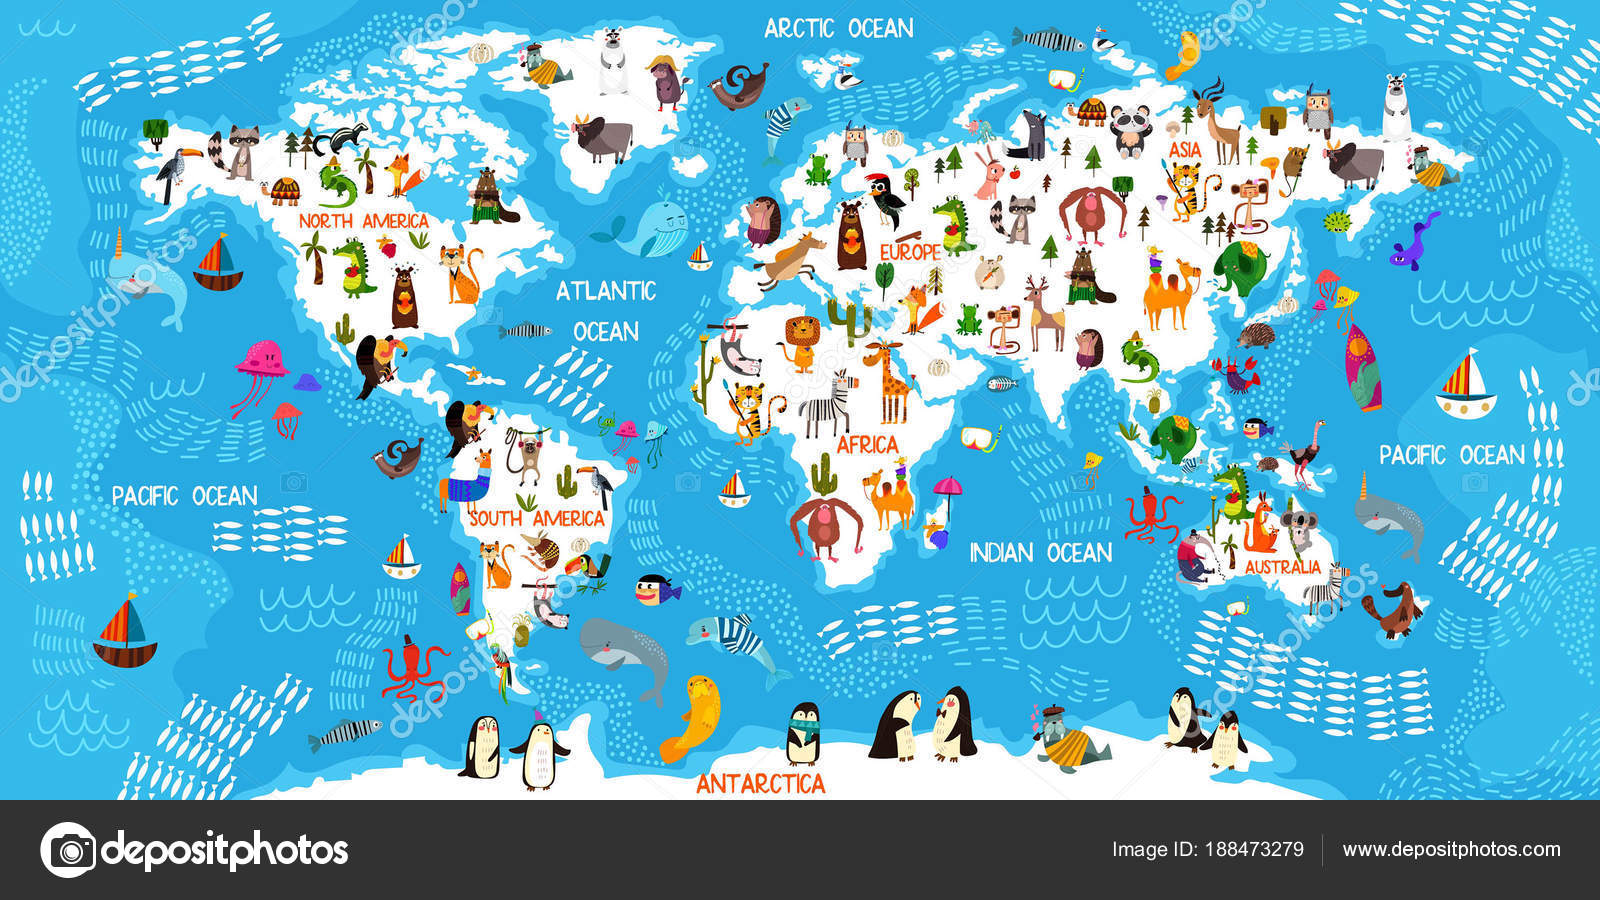 Cartoon animal world map animals from all over the worldoceans cartoon animal world map animals from all over the worldoceans and continentseat for kids designeducational gamemagnet or poster design gumiabroncs Image collections